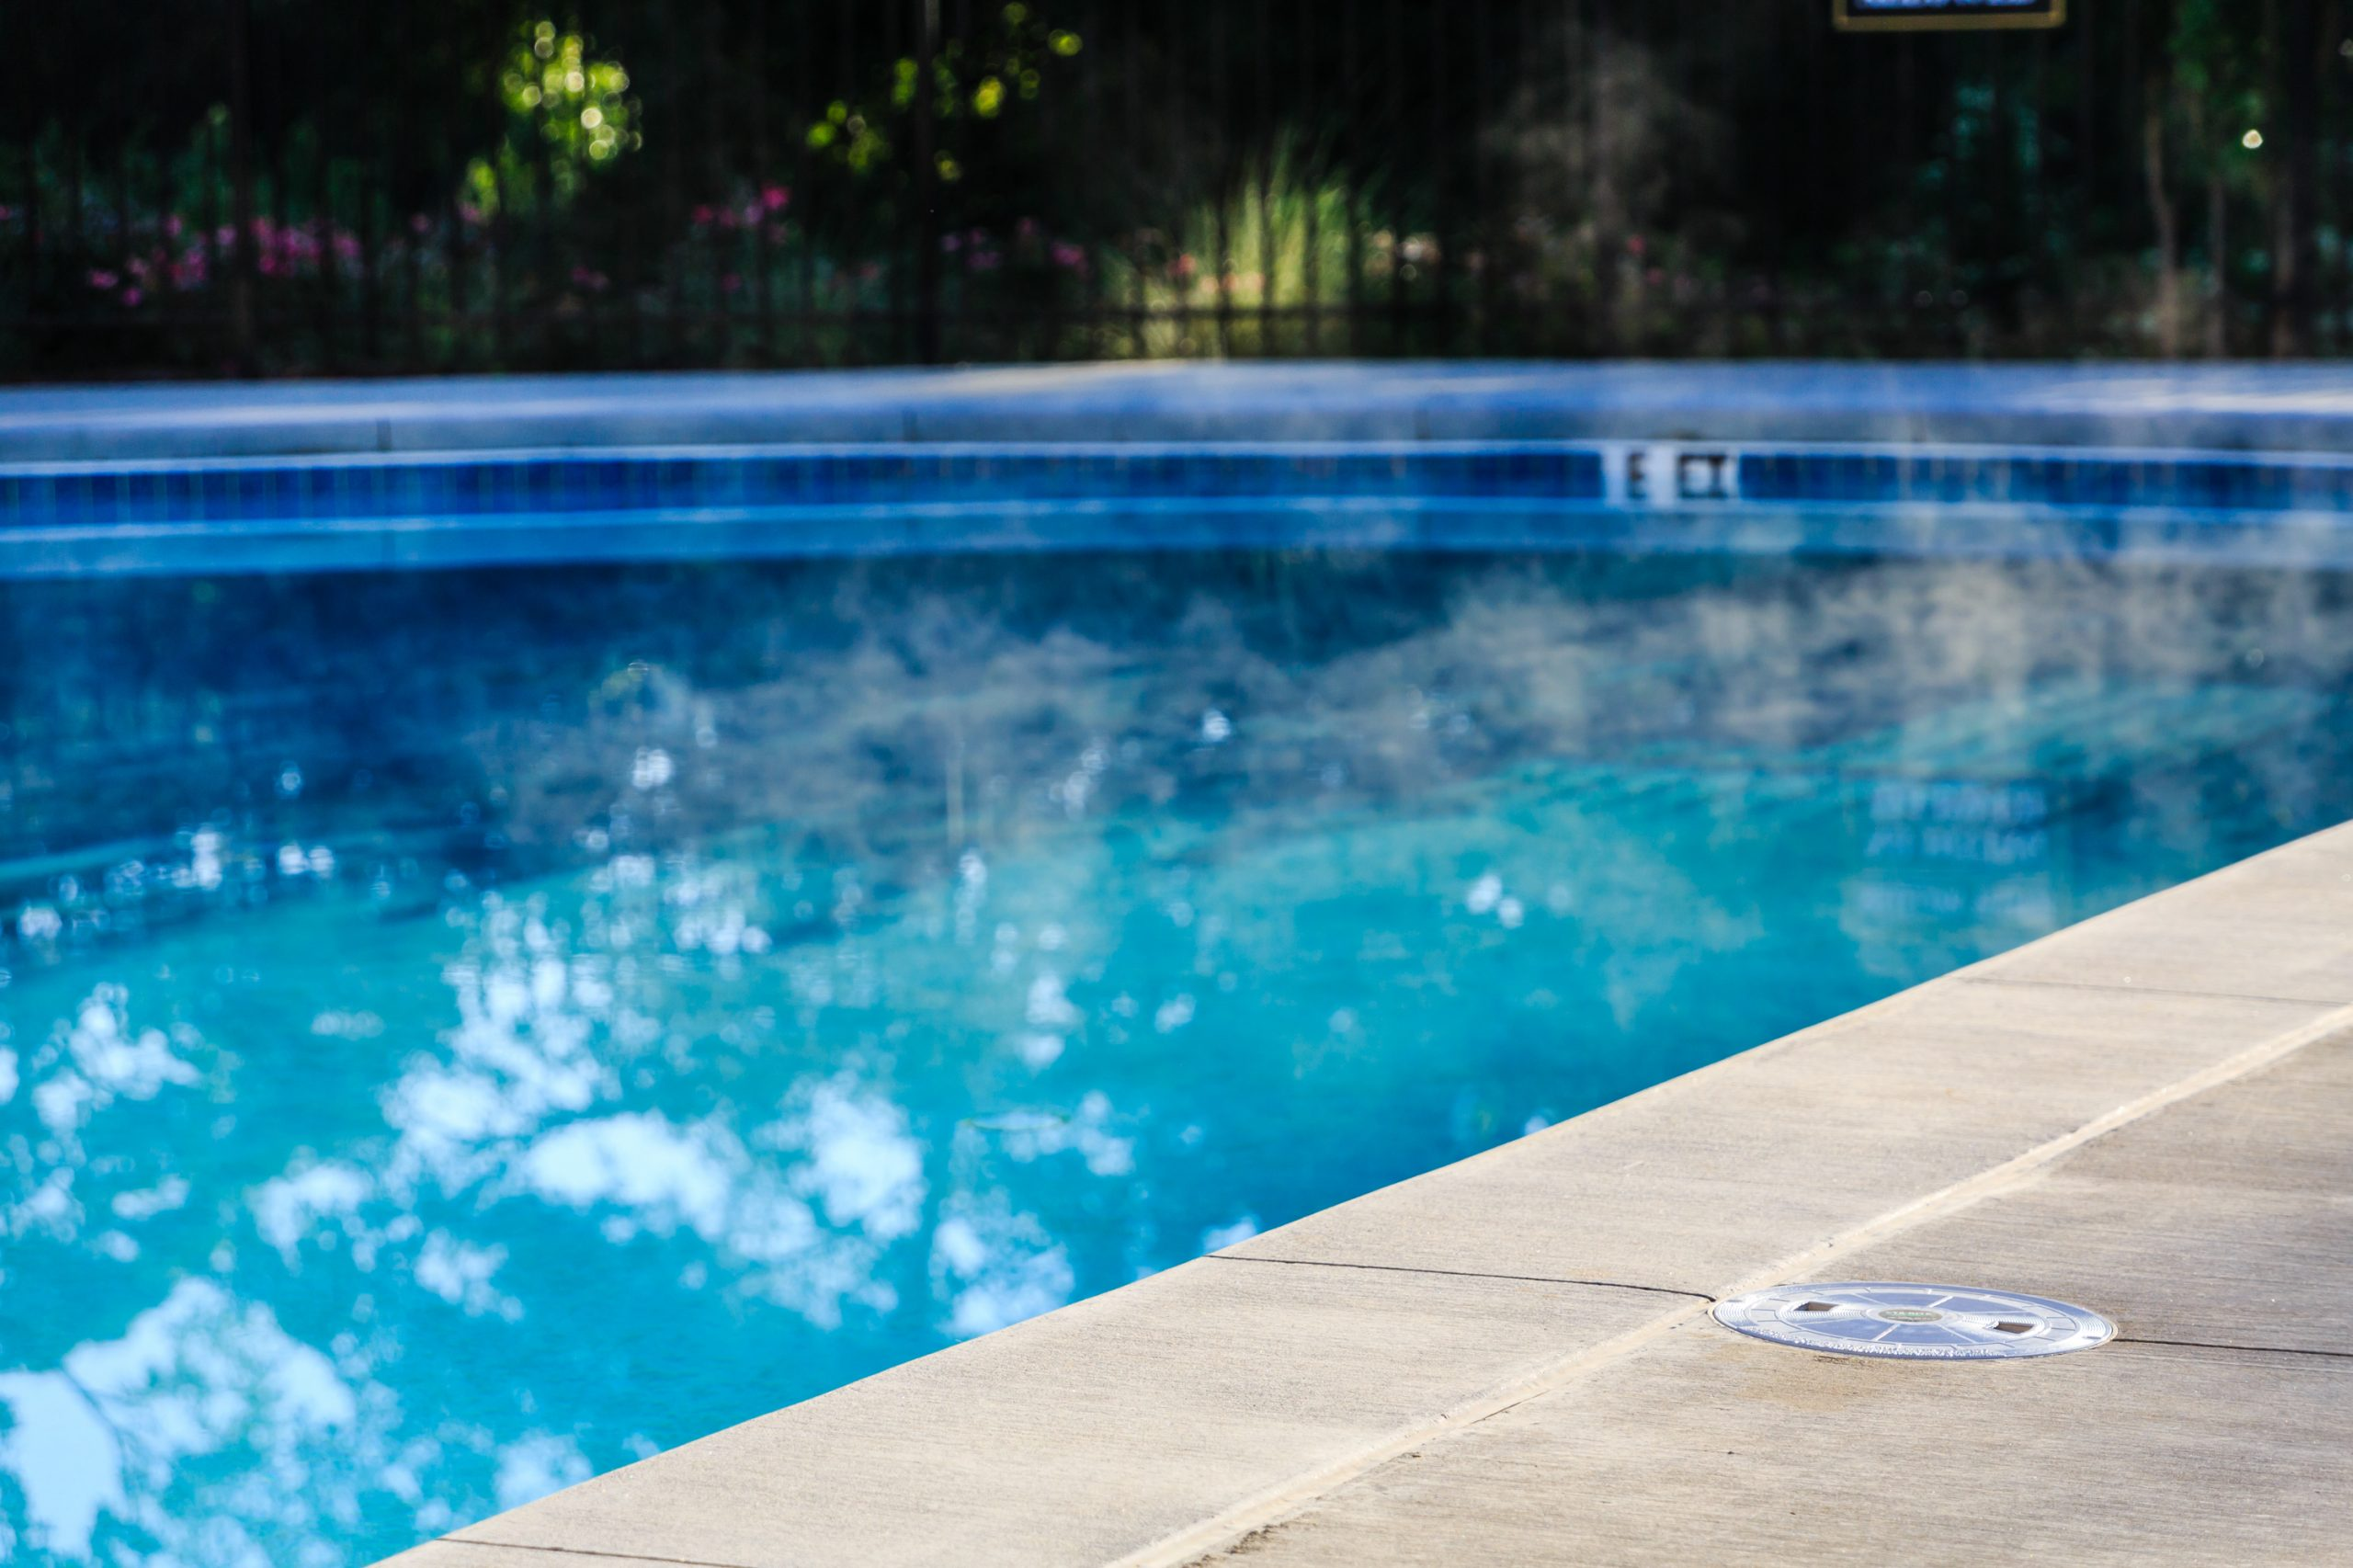 The ban of gas heated pools